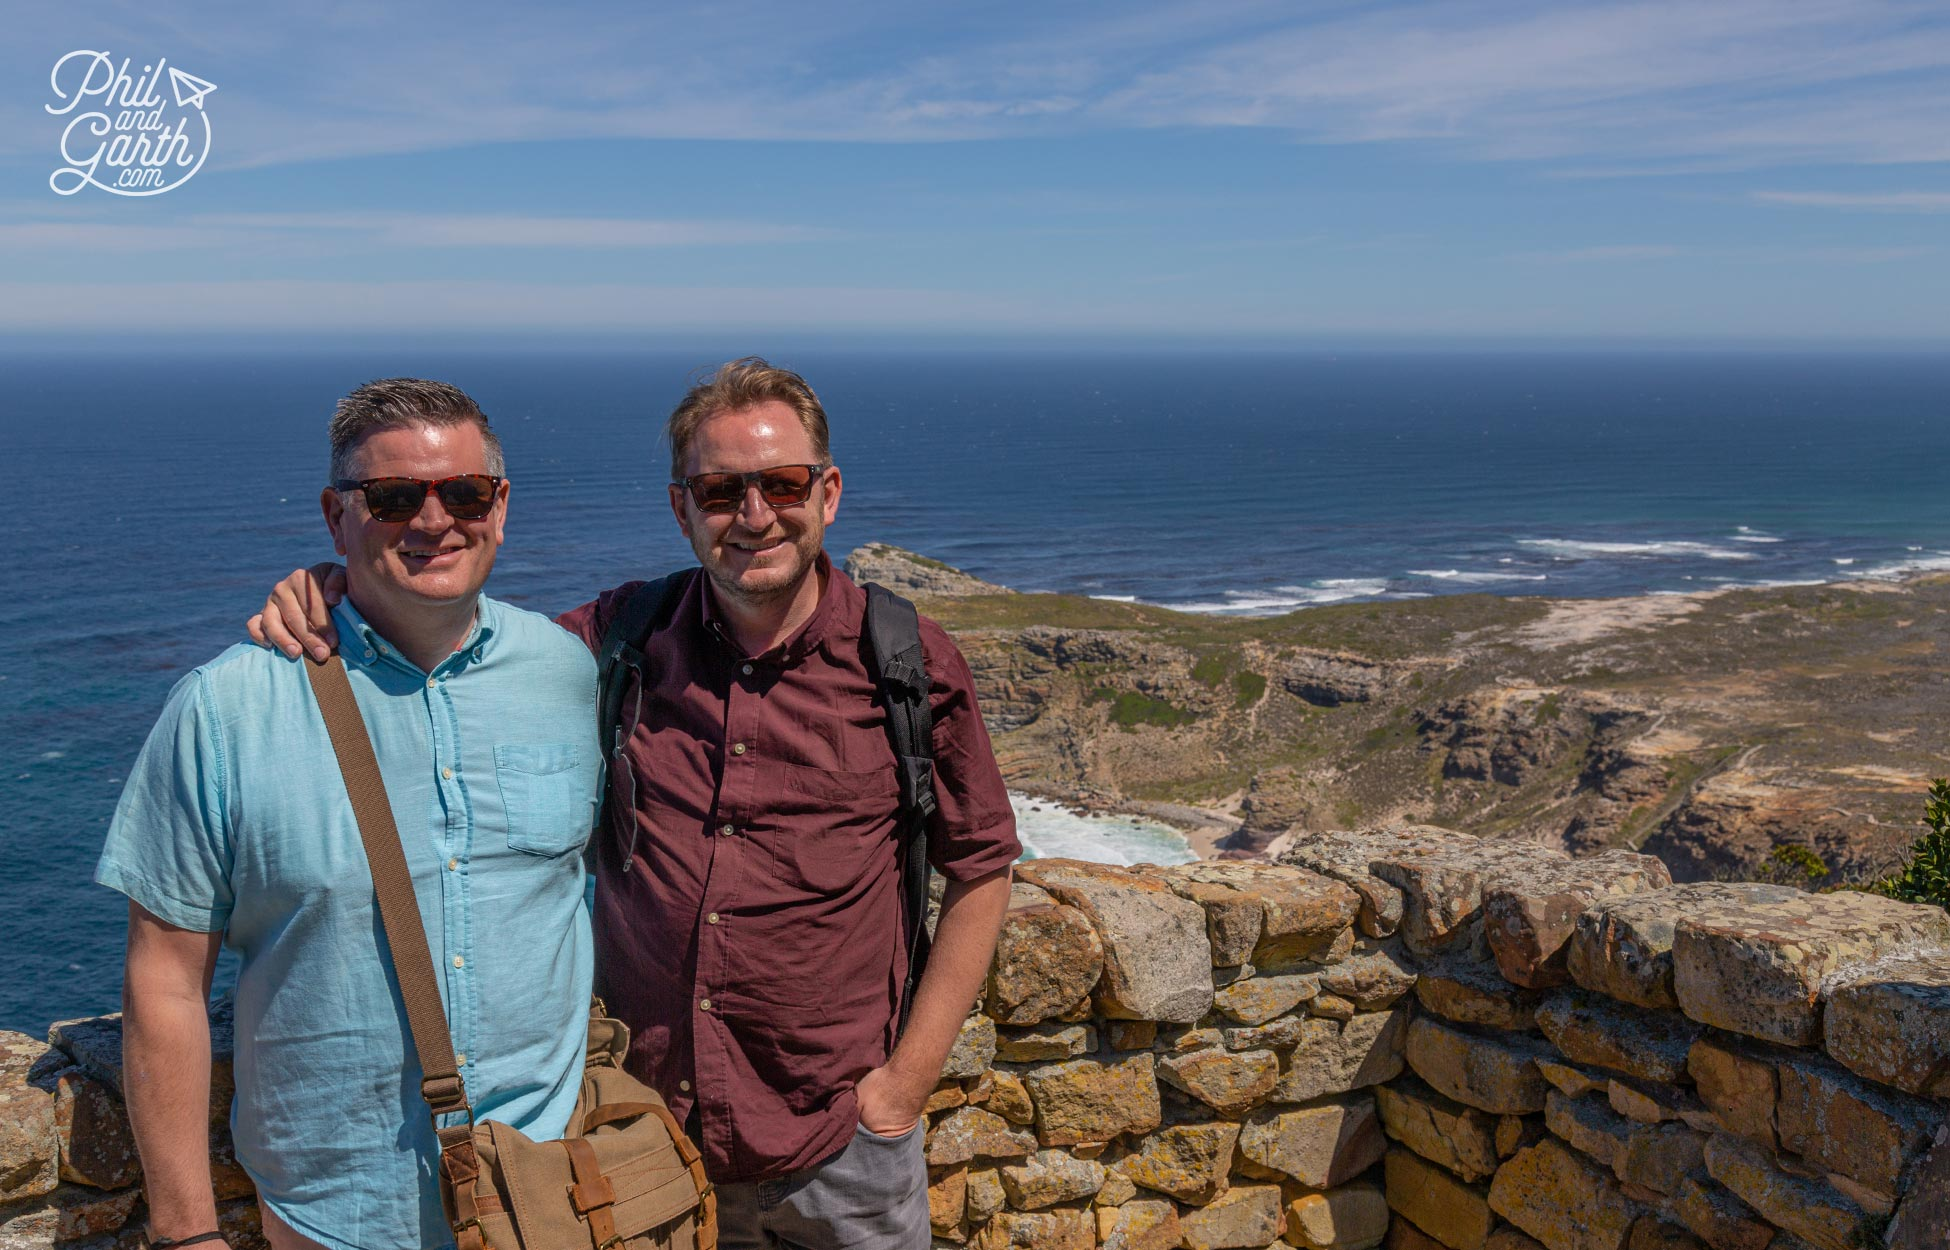 Phil and Garth at Cape Point, South Africa